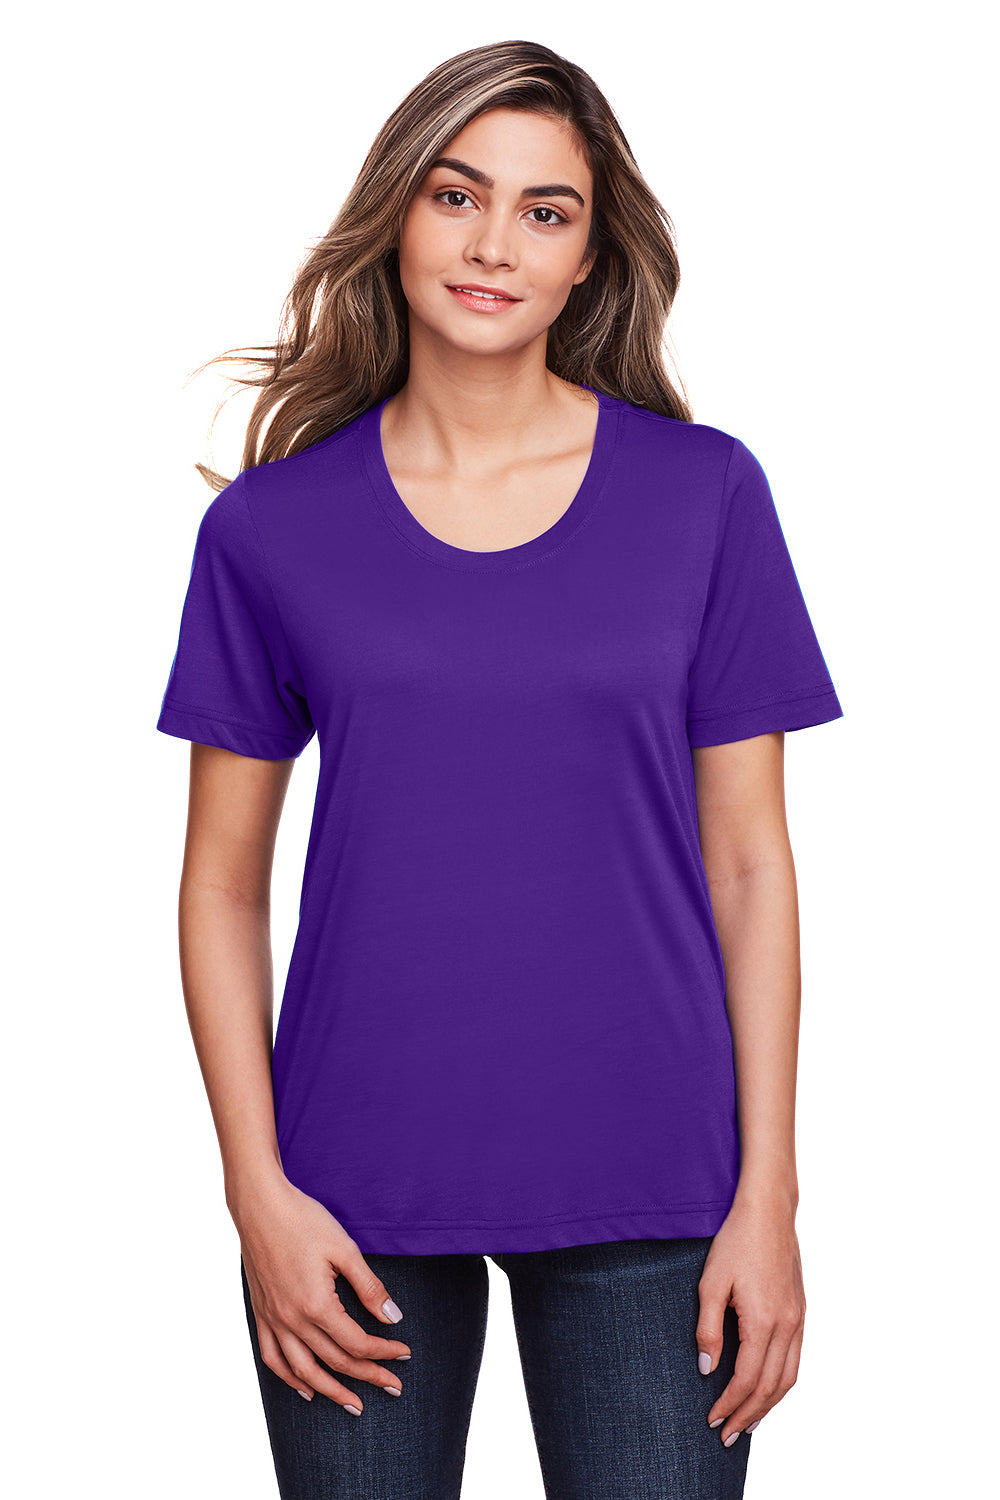 Core 365 CE111W Womens Fusion ChromaSoft Performance Moisture Wicking Short Sleeve Scoop Neck T-Shirt Purple Front